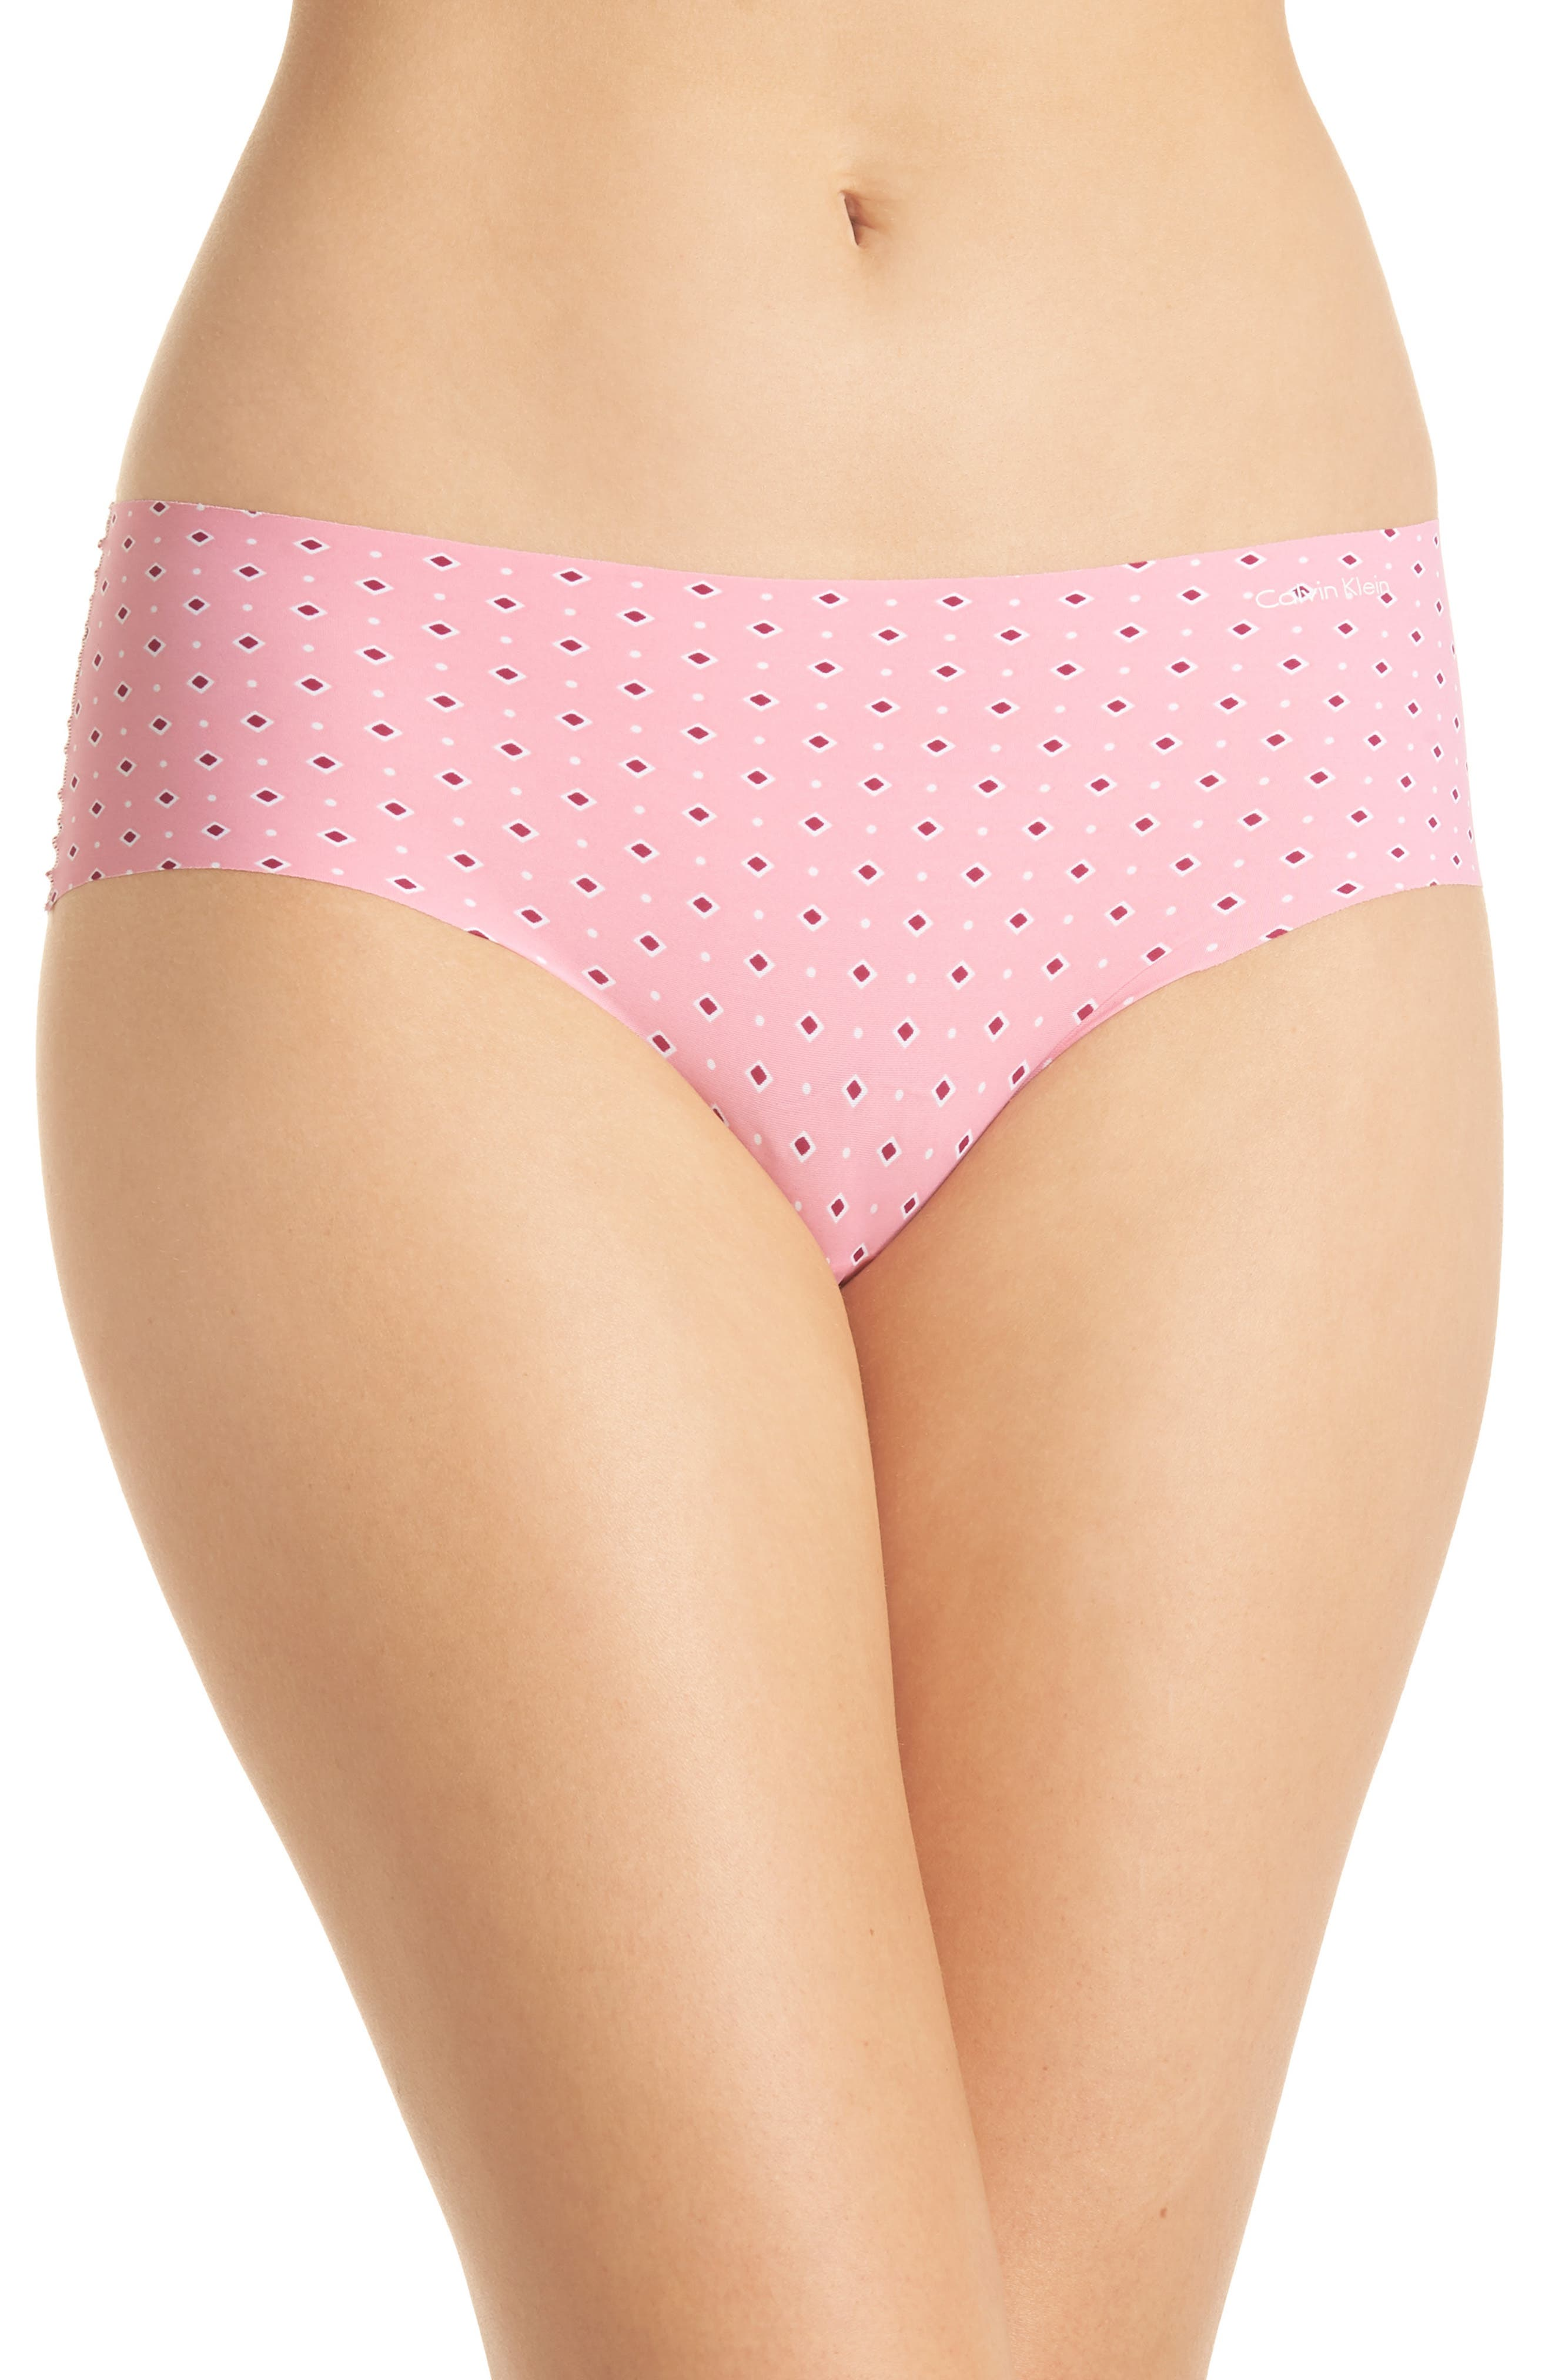 Invisibles Hipster Briefs,                             Main thumbnail 1, color,                             SHADOW DIAMOND